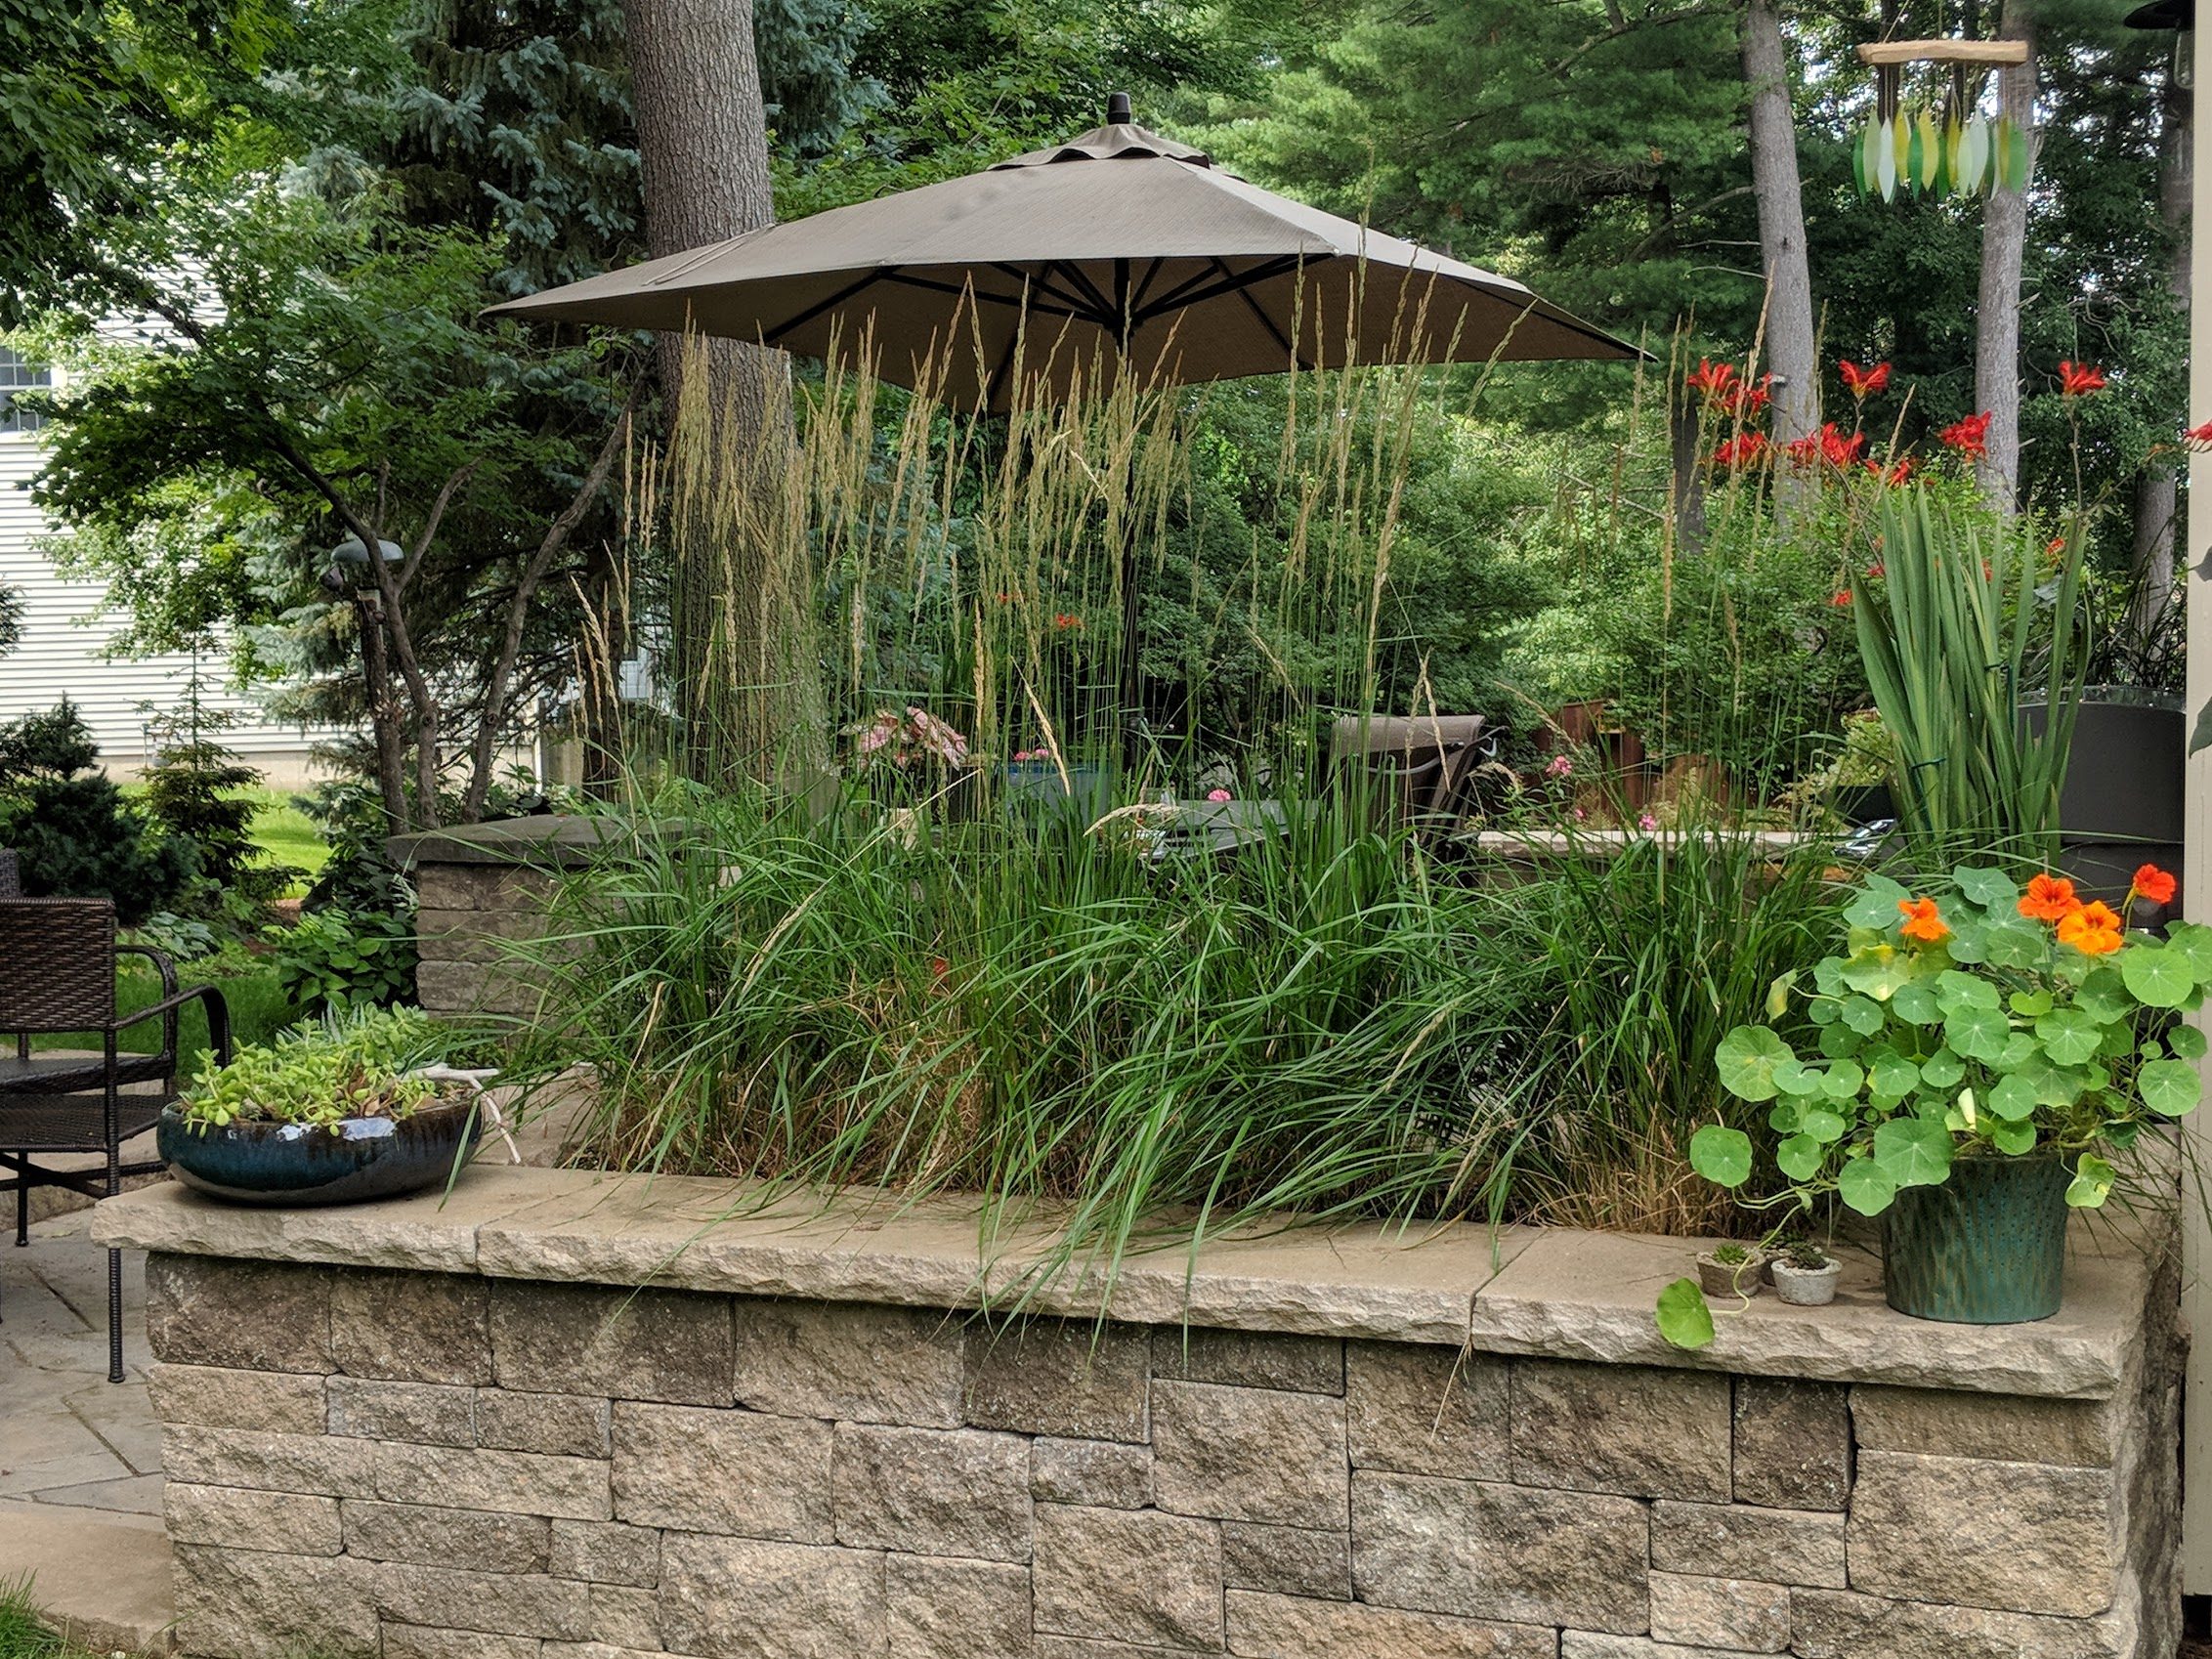 'Karl Foerster' provides light screening of  patio space